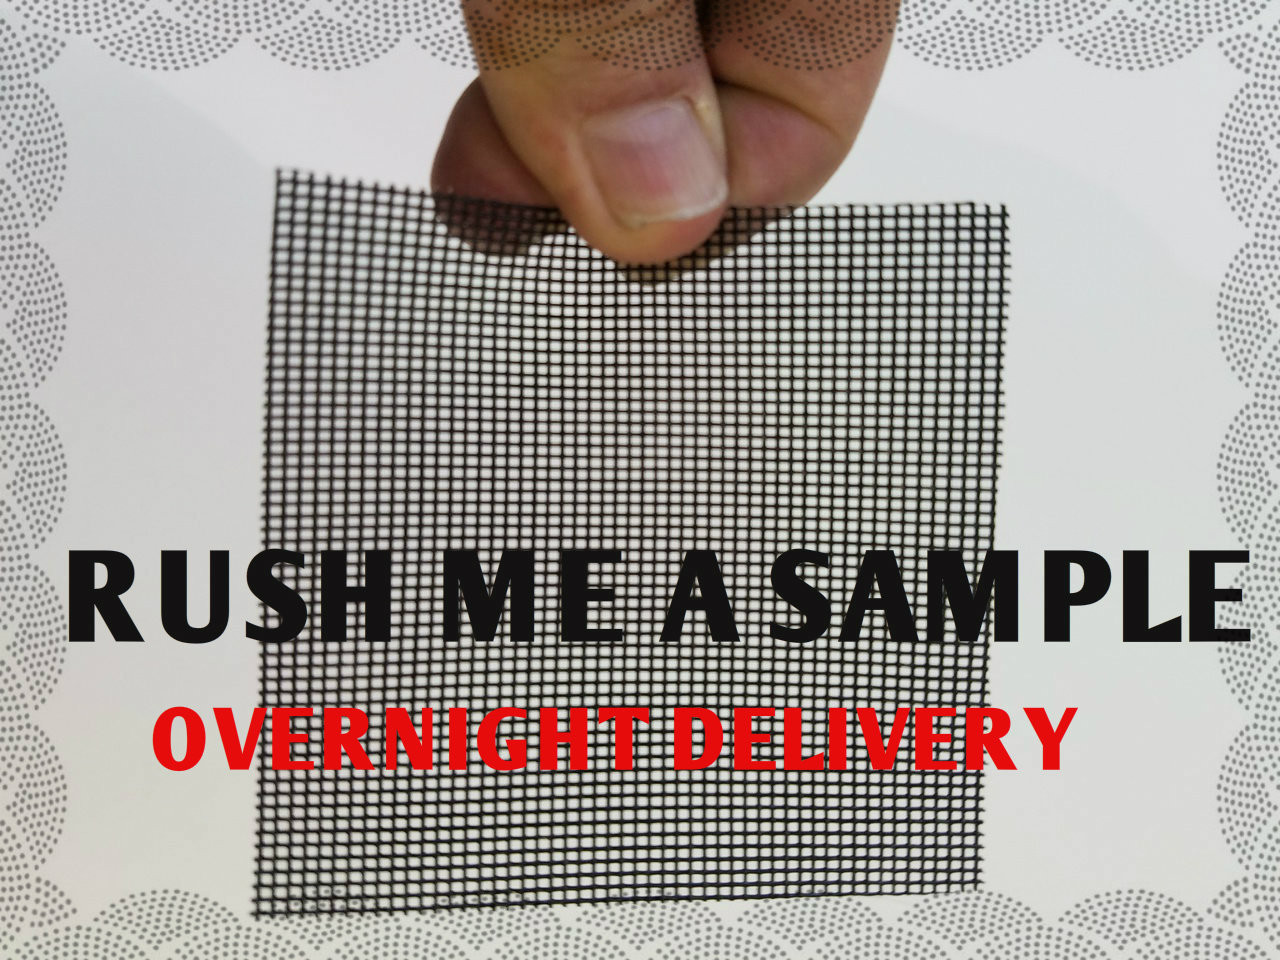 MAIL ME A SAMPLE - RUSH OVERNIGHT DELIVERY